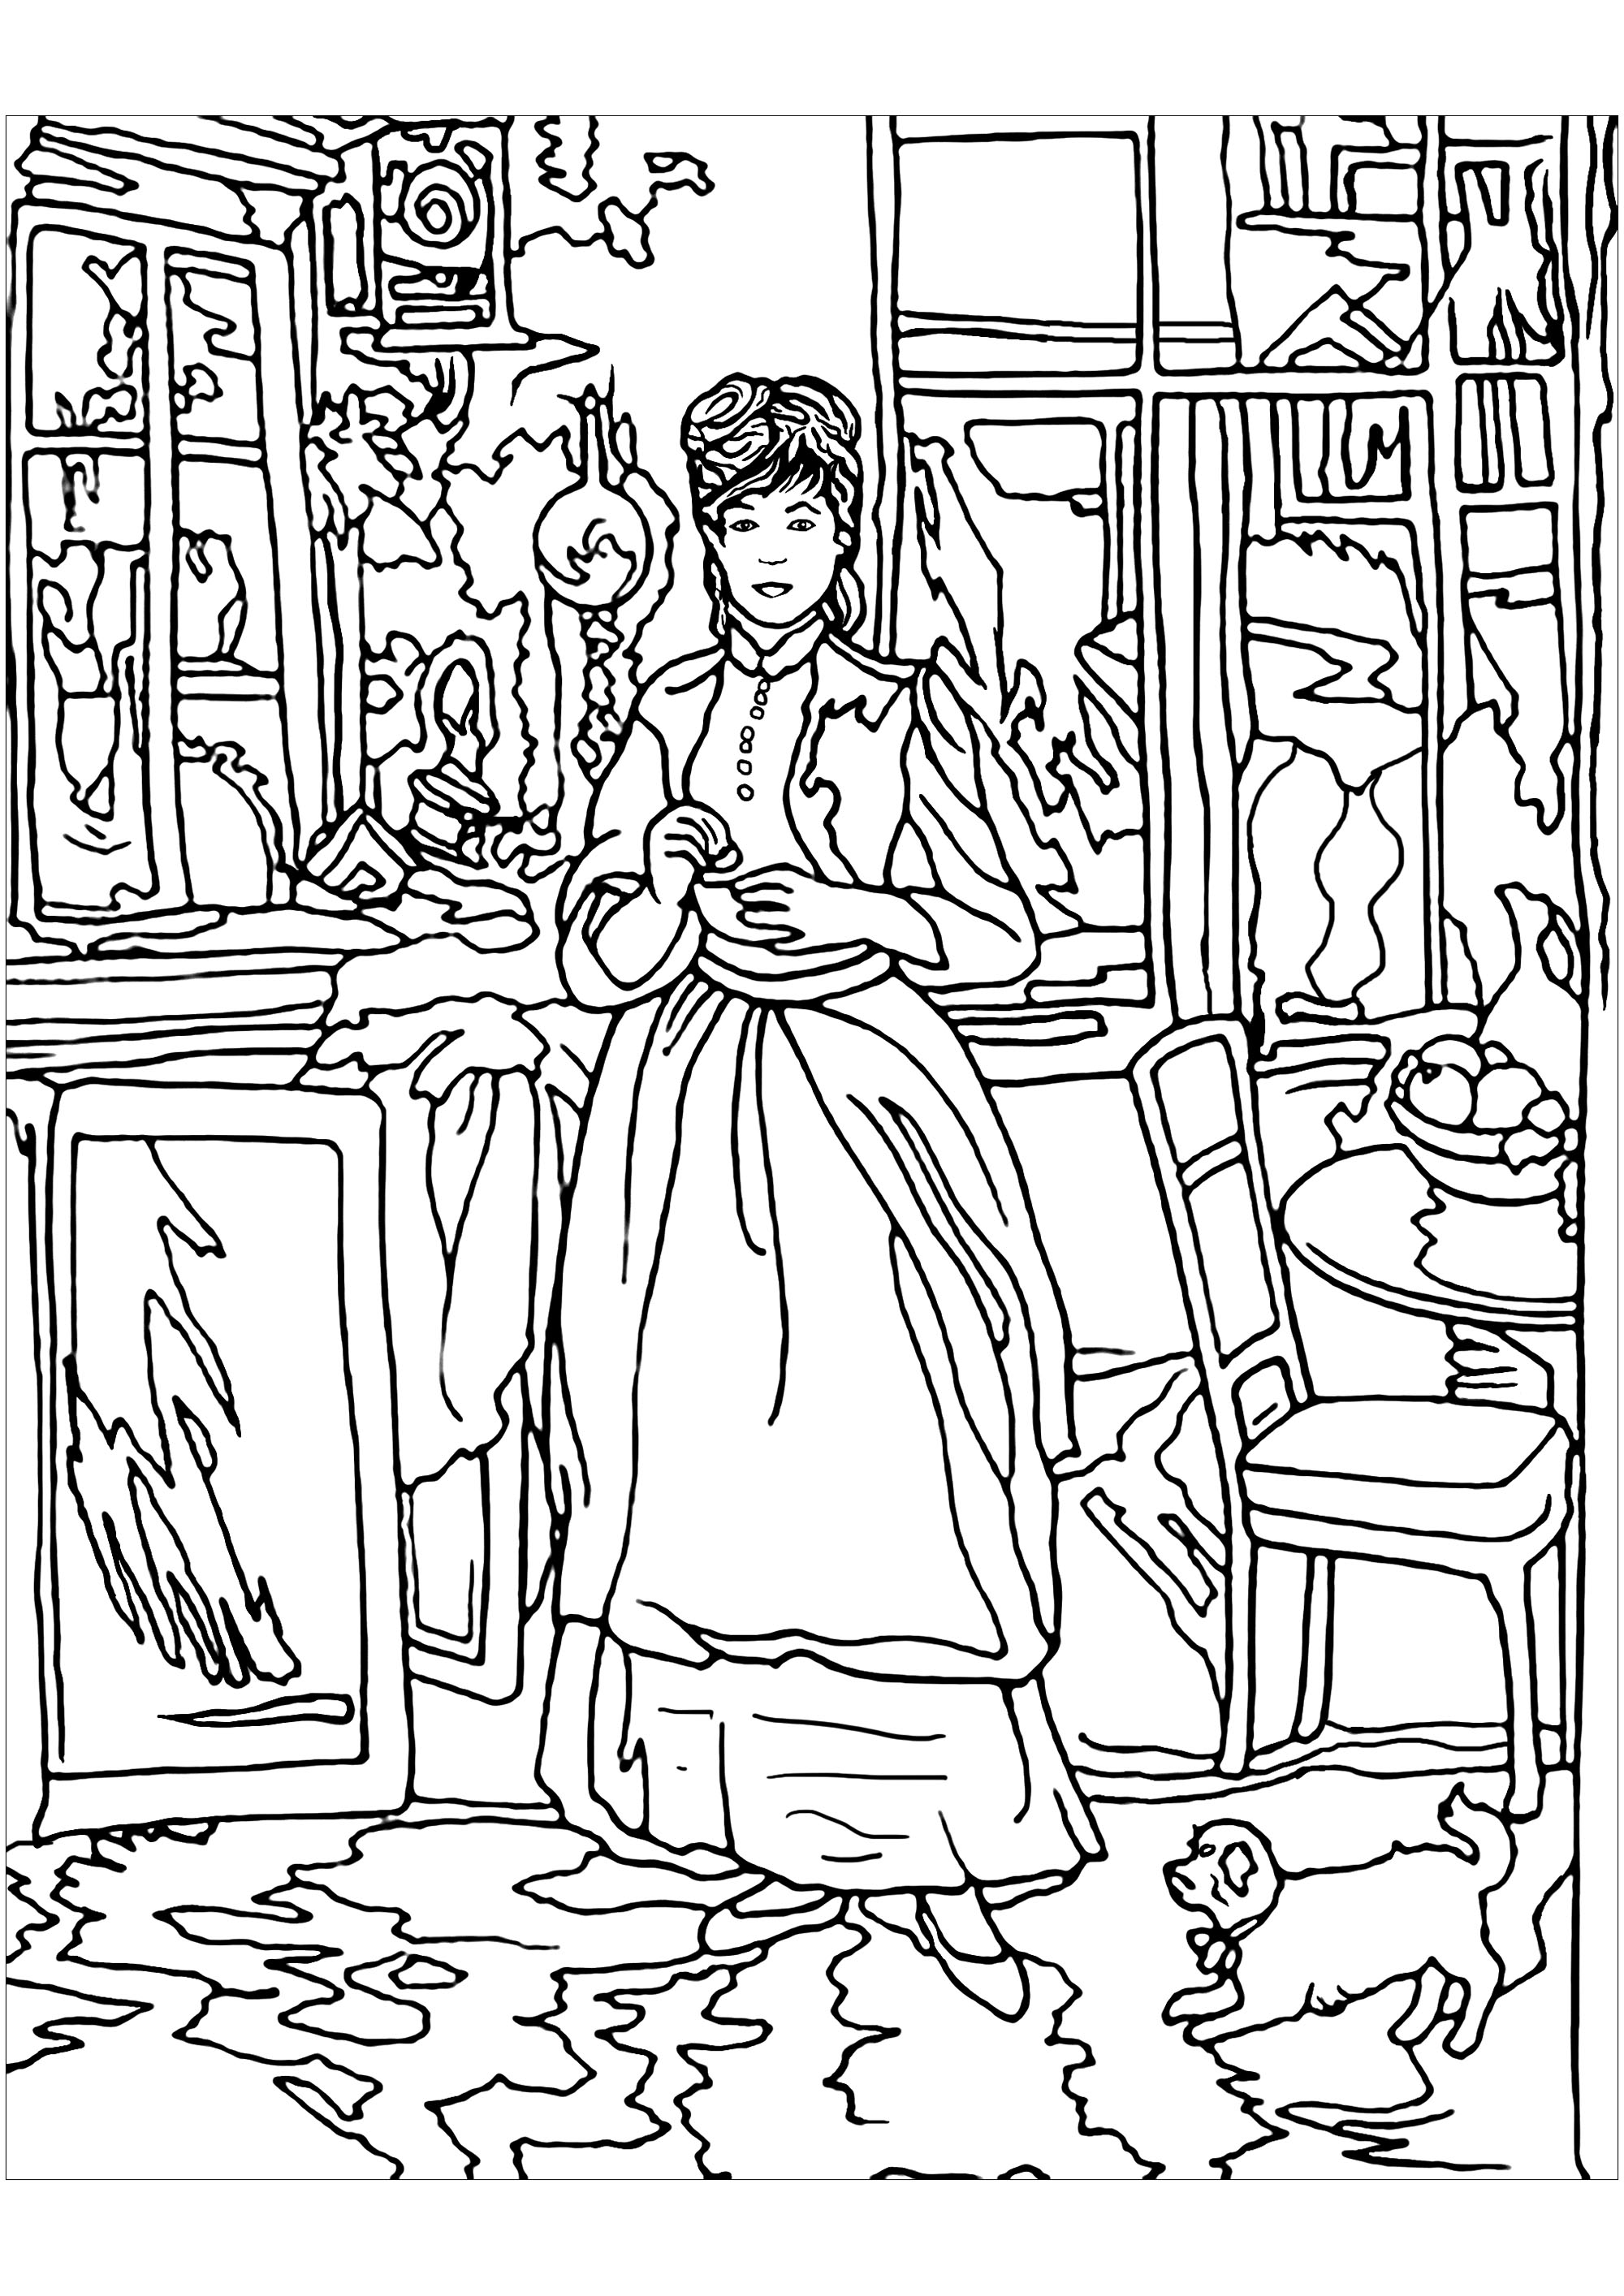 masterpiece coloring pages god39s masterpiece coloring page christian art masterpiece coloring pages